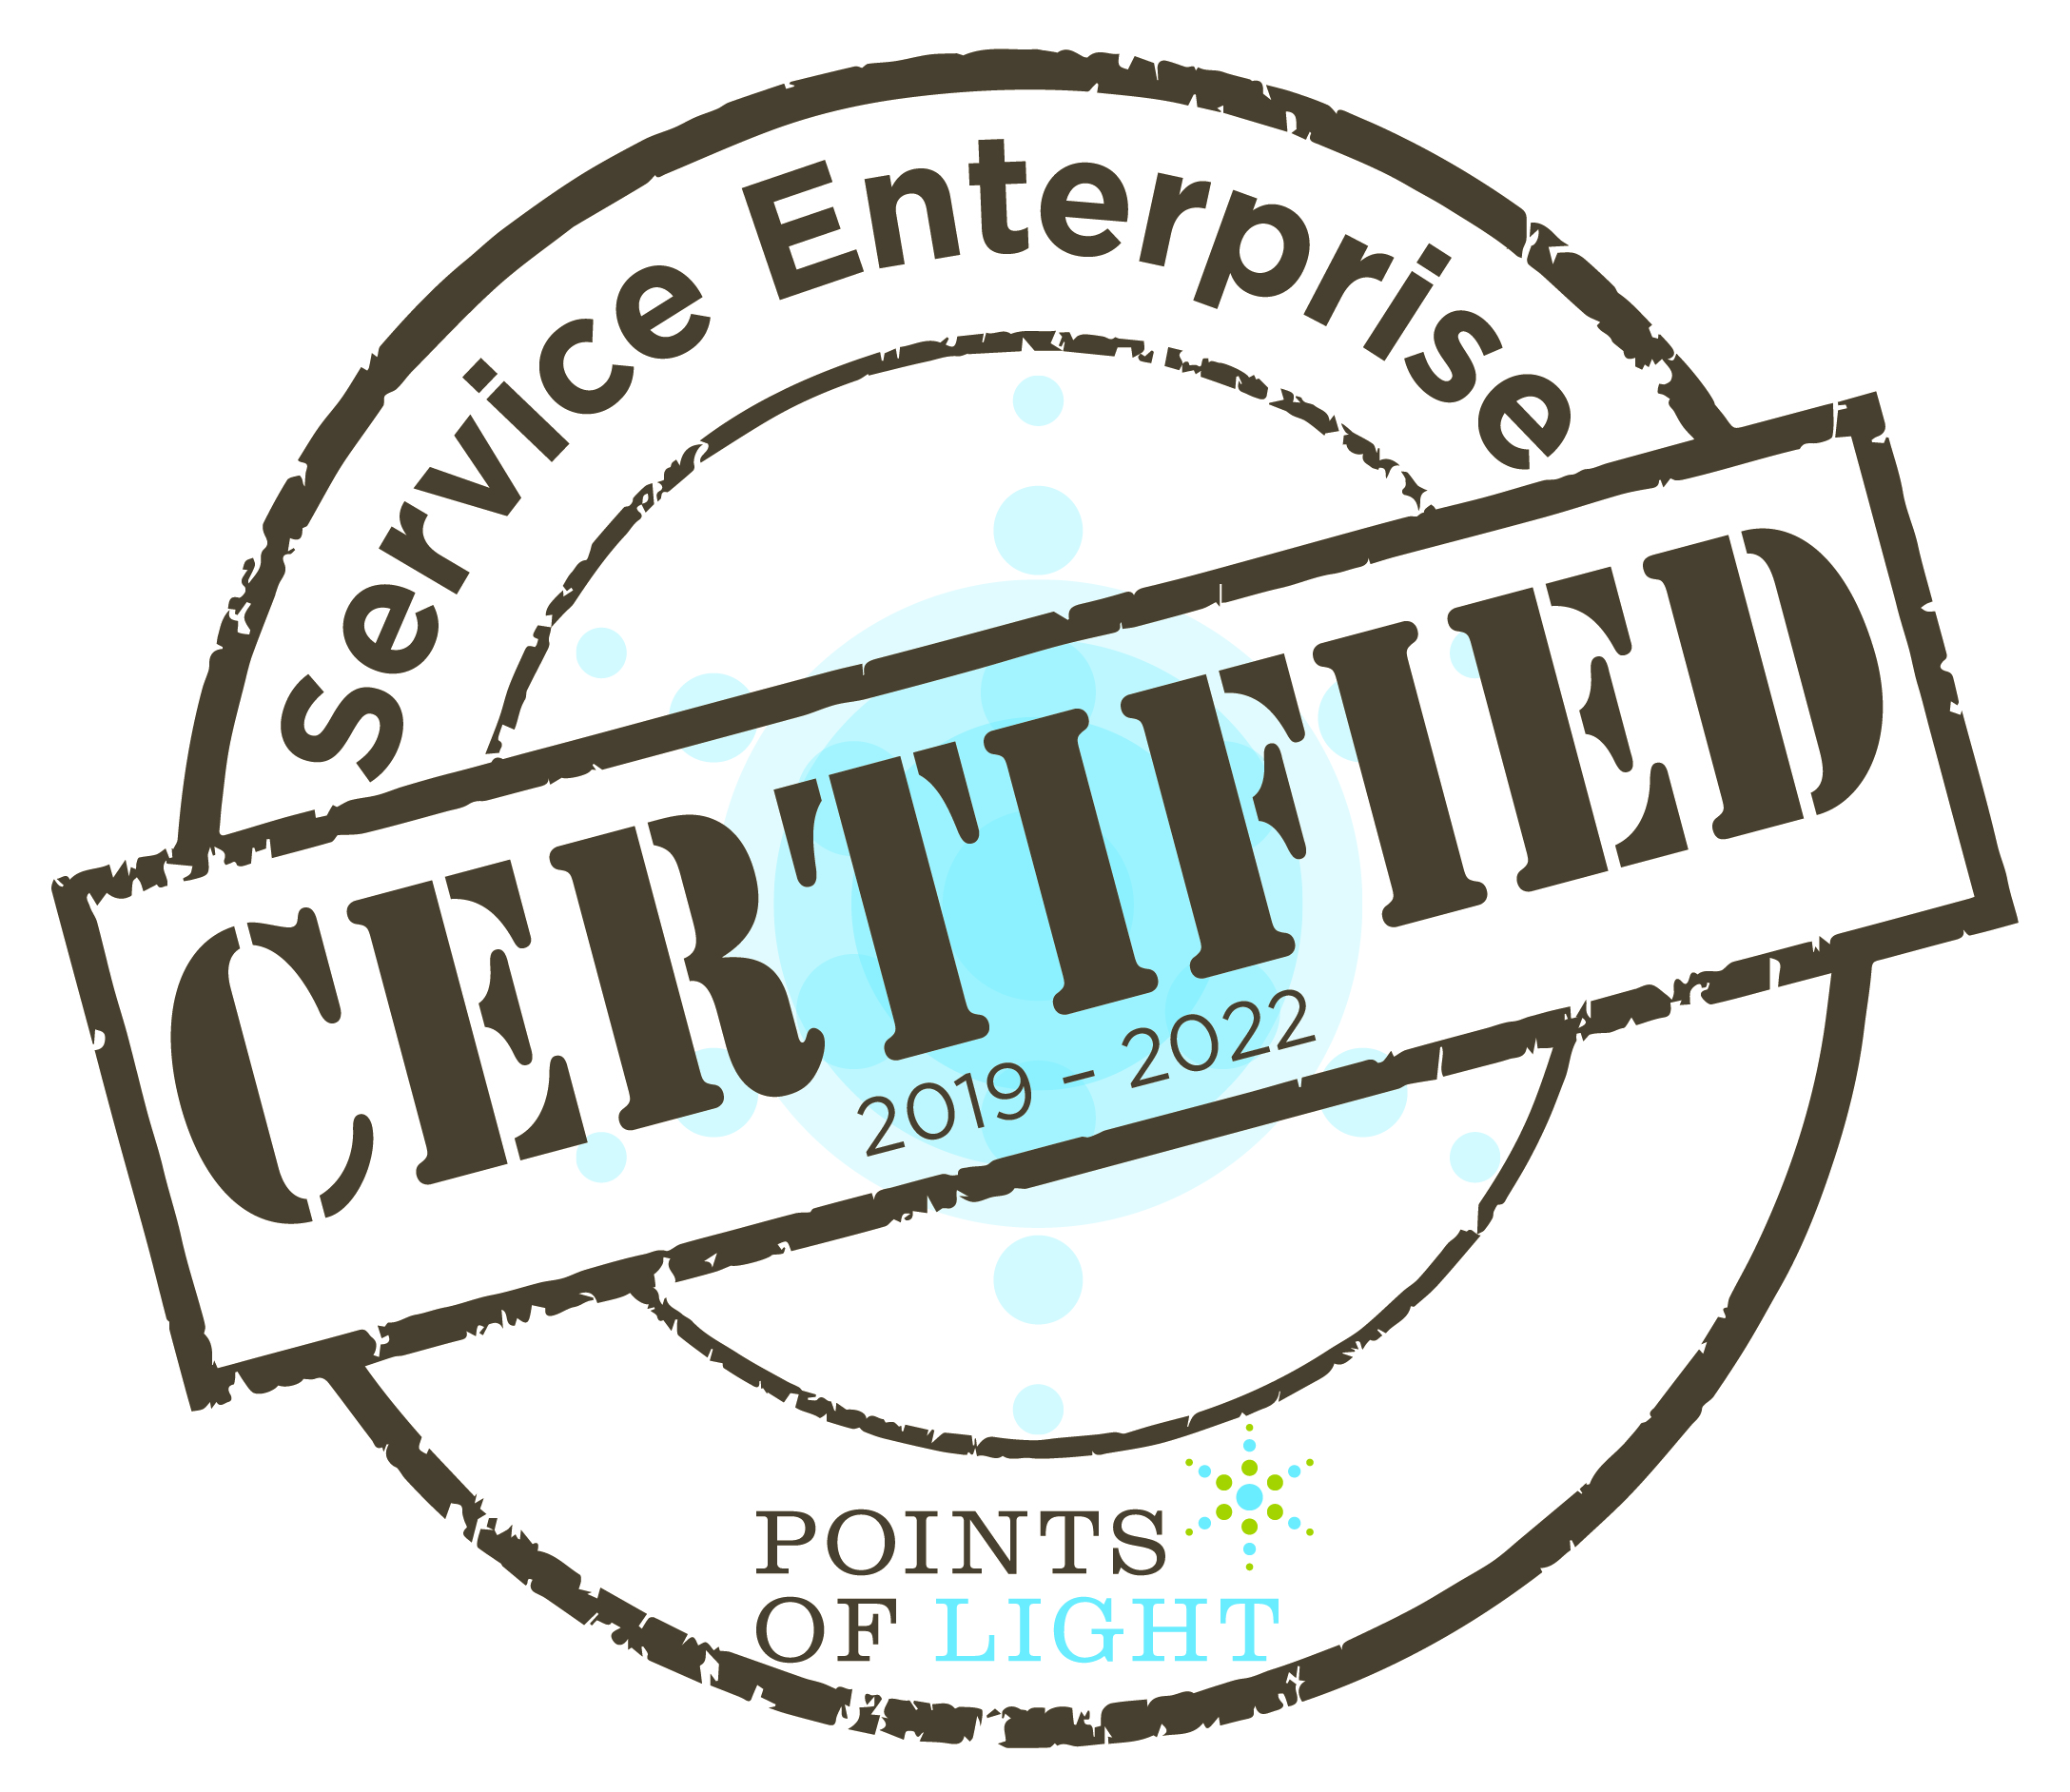 Service Enterprise Certification  Seal proclaims the Iowa Department for the Blind is a Points of Light Certified Service Enterprise